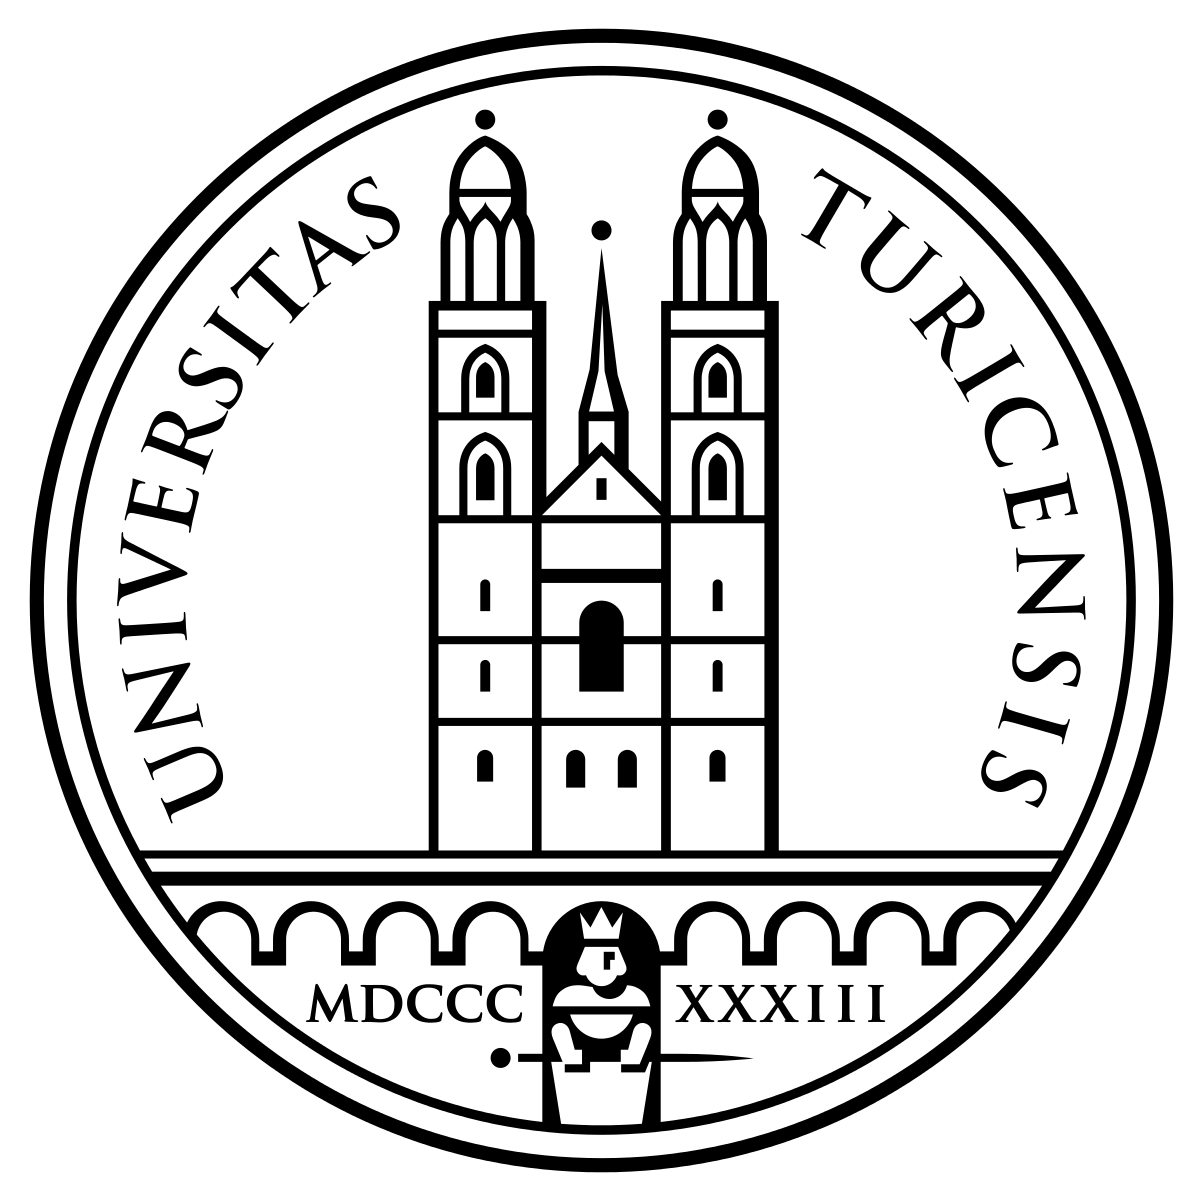 University_of_Zurich_seal.png